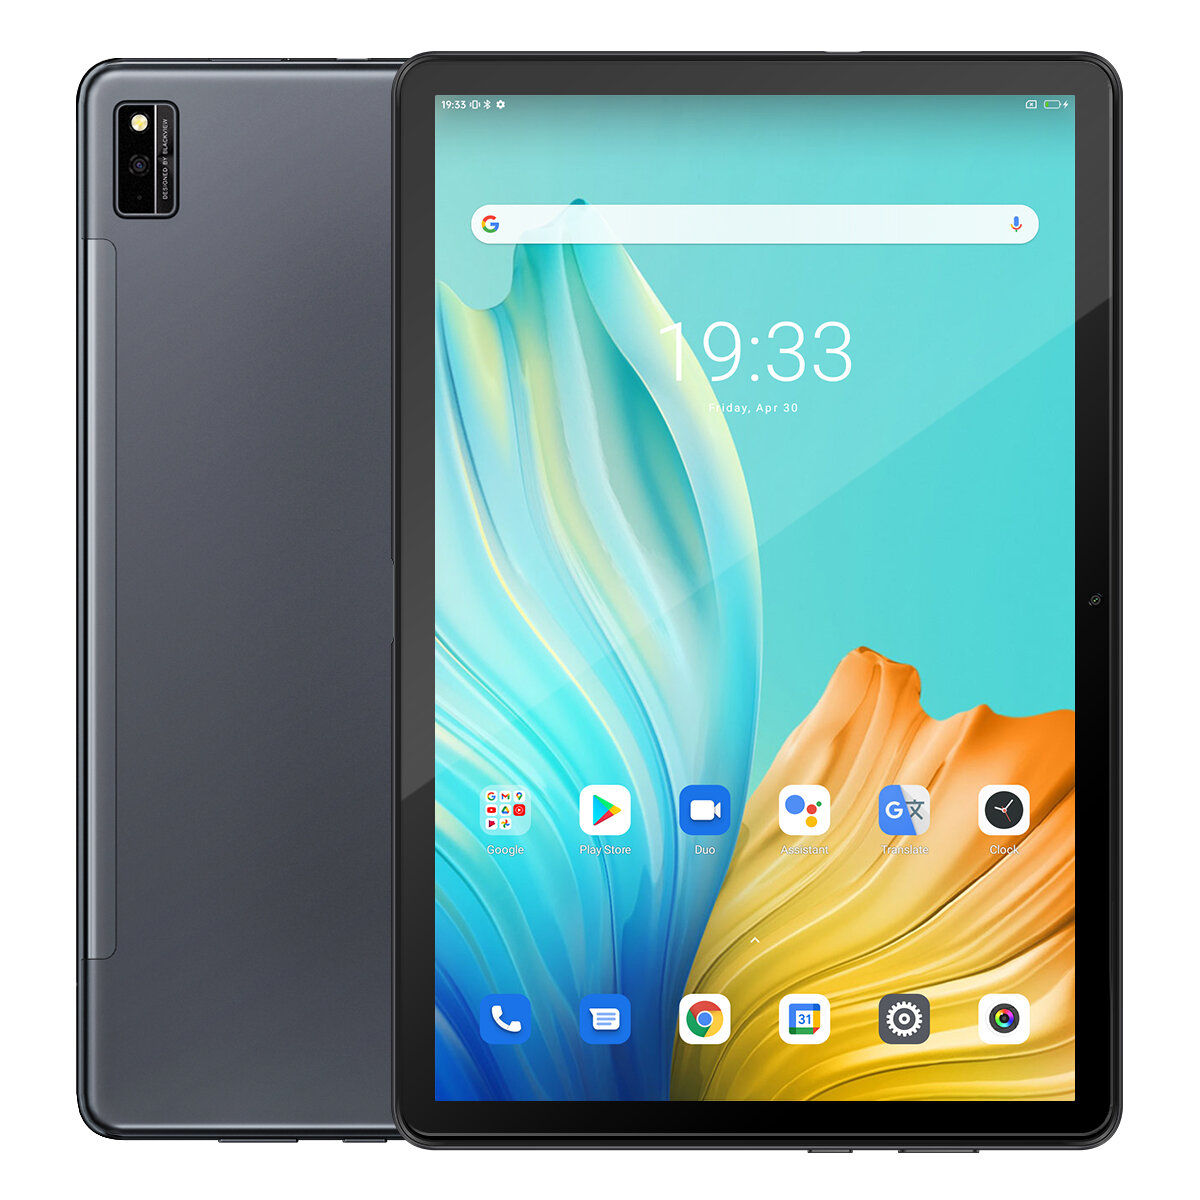 Blackview Tab 10 MTK8768 Octa Core 4GB RAM 64GB ROM 4G LTE 10.1 Inch Android 11 Tablet